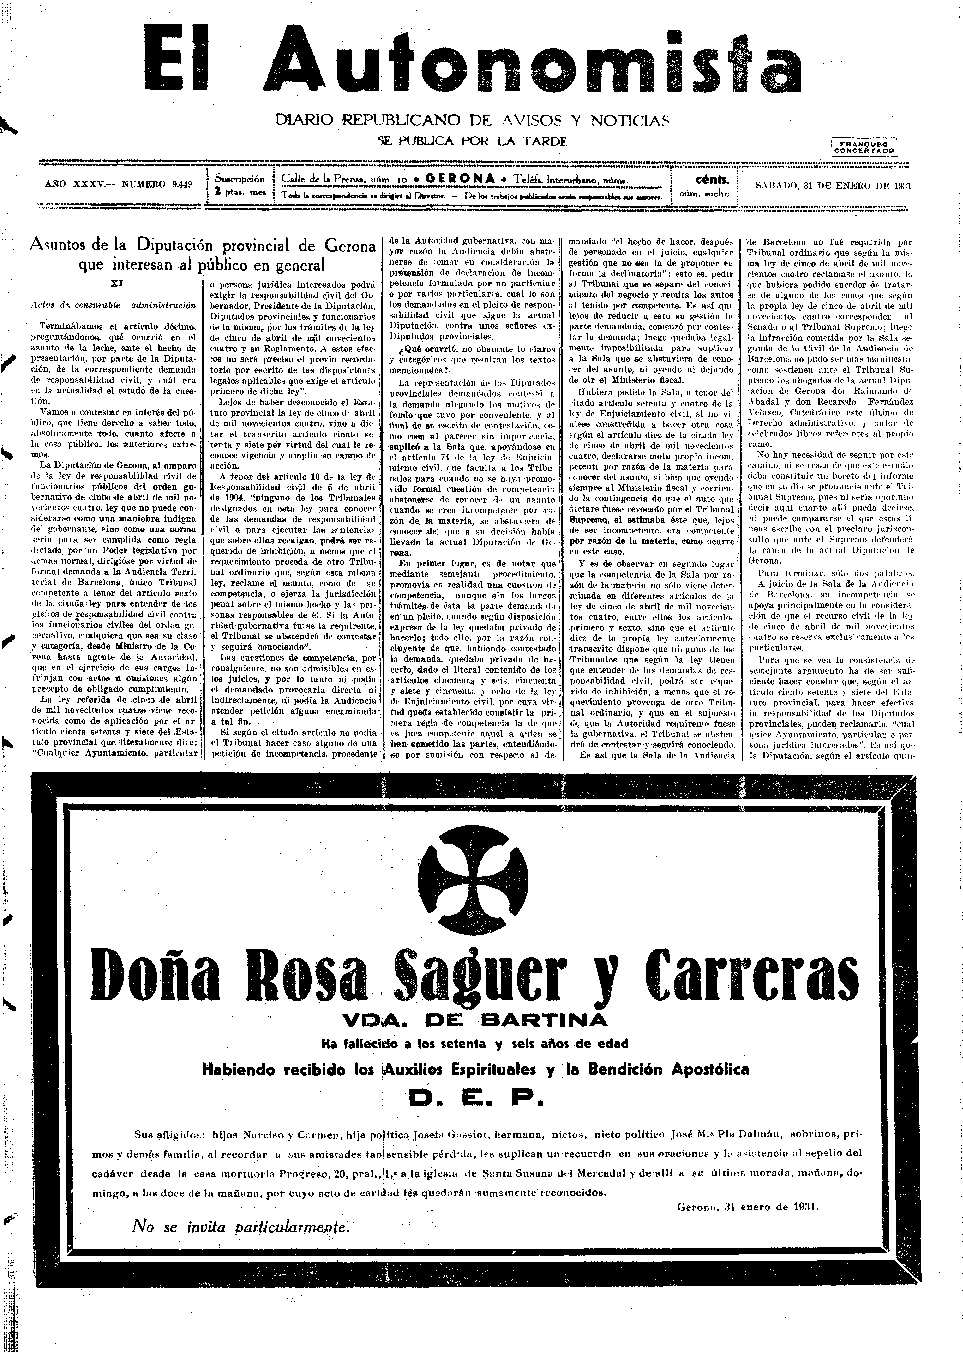 Autonomista, L'. 31/1/1931. [Issue]